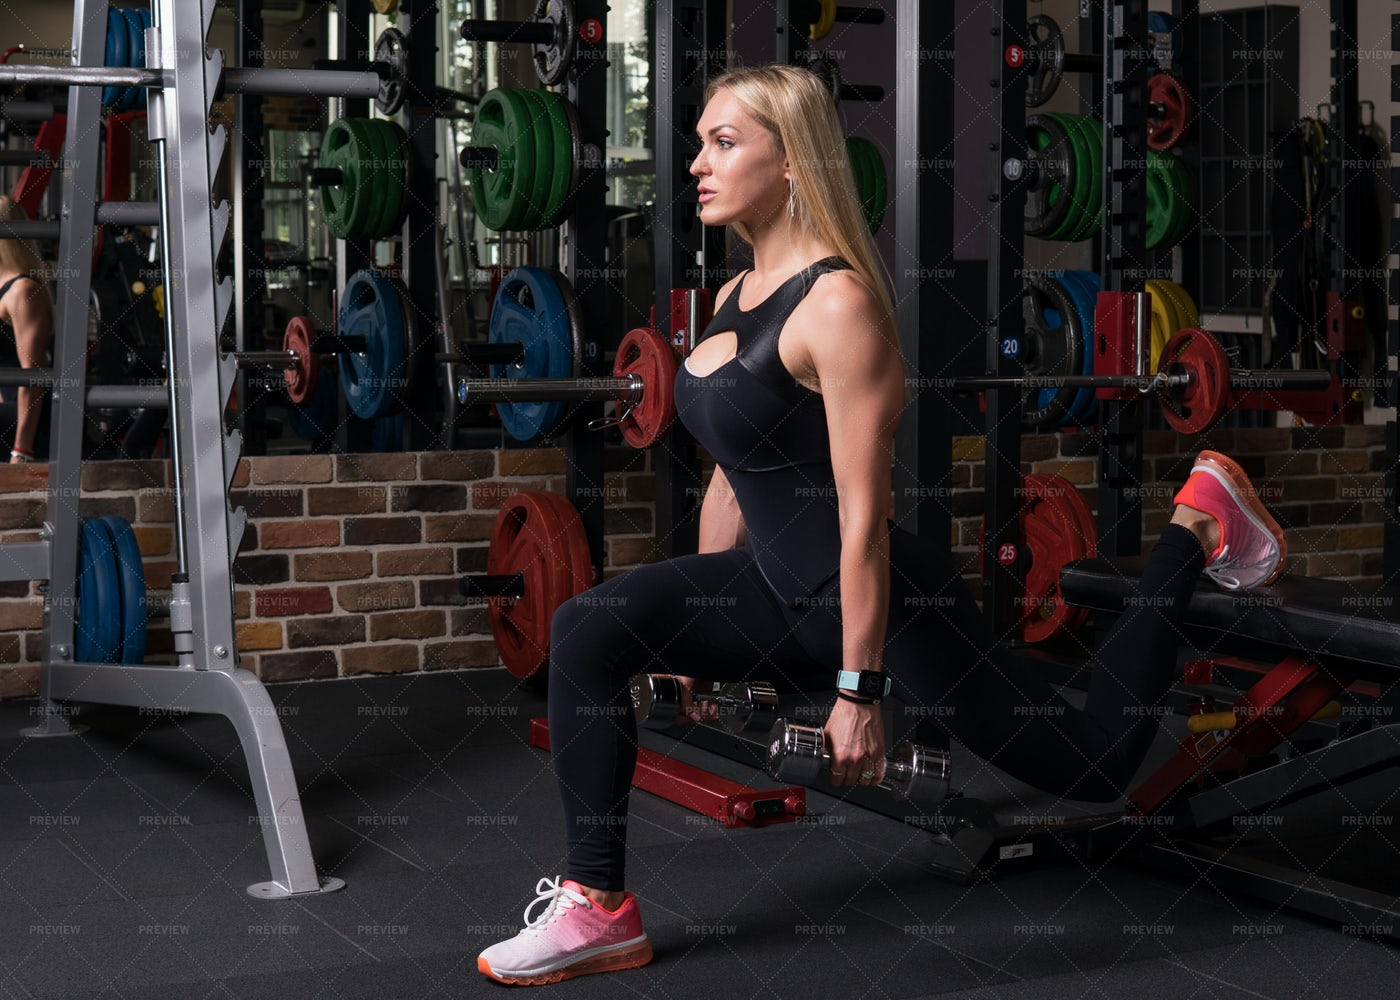 Lunge Squats With Weights: Stock Photos